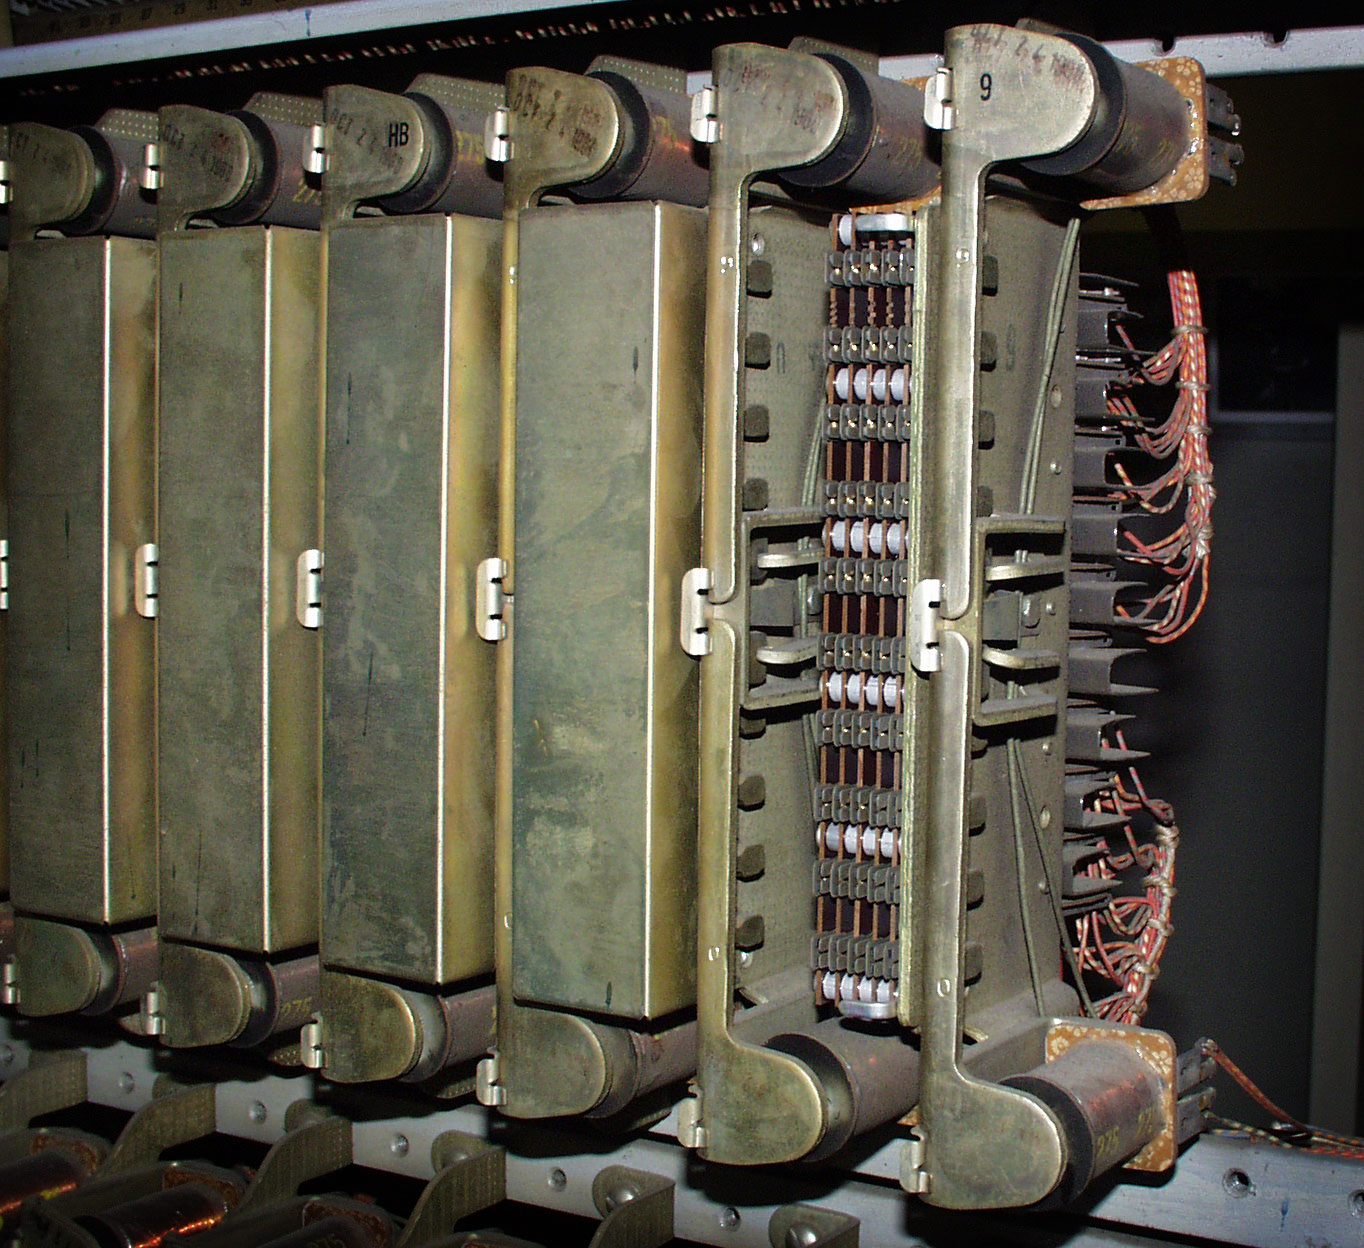 Relays - Electric relay invented